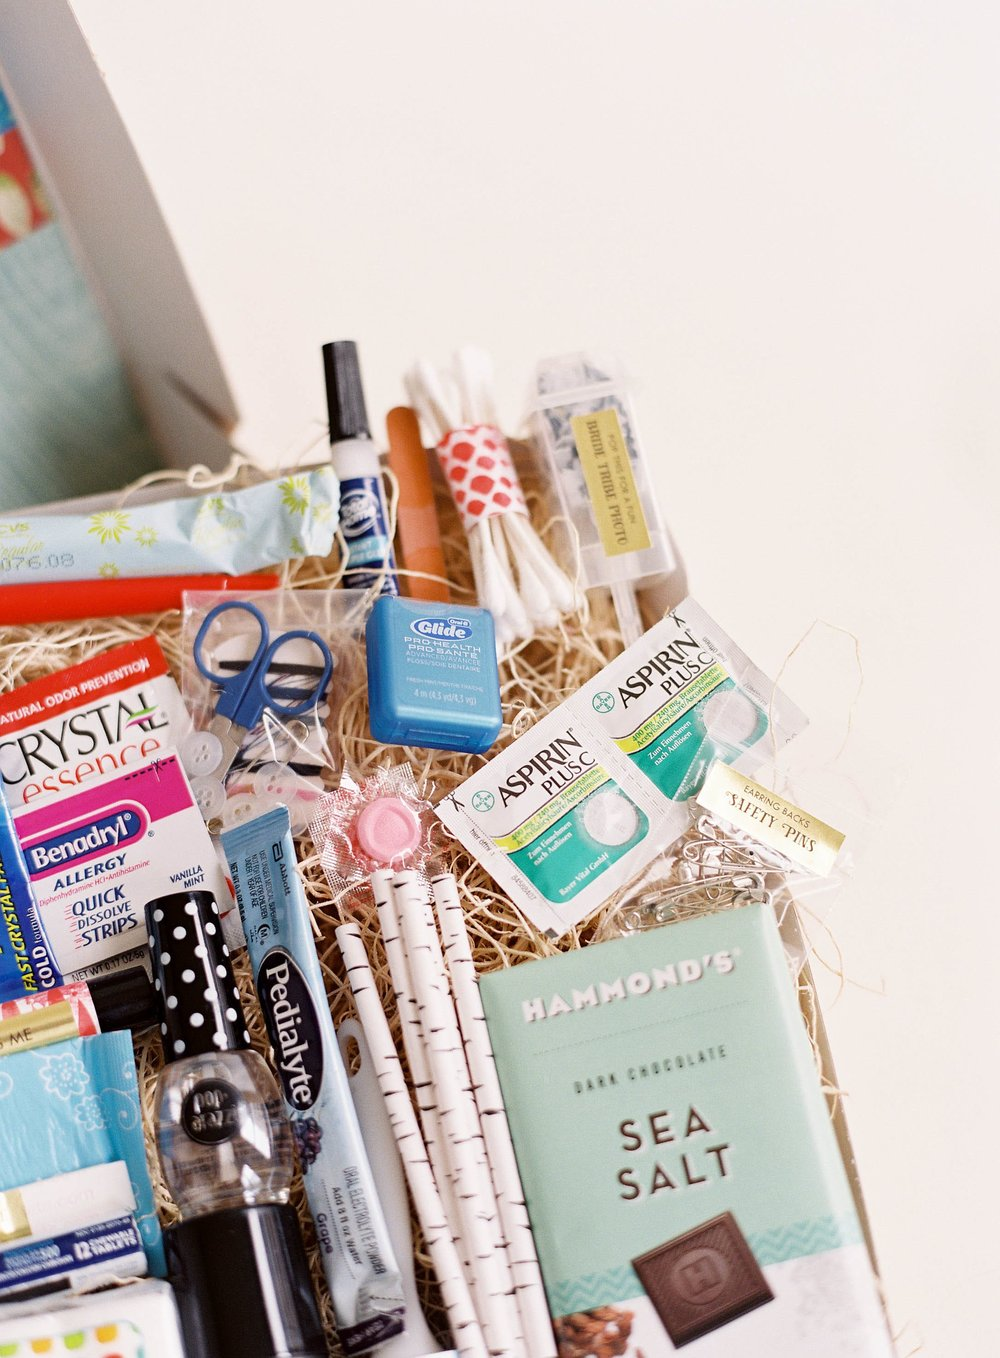 In Case of Emergency Bridal Suite Gift Box by Gilded Gifts photo 3.jpg